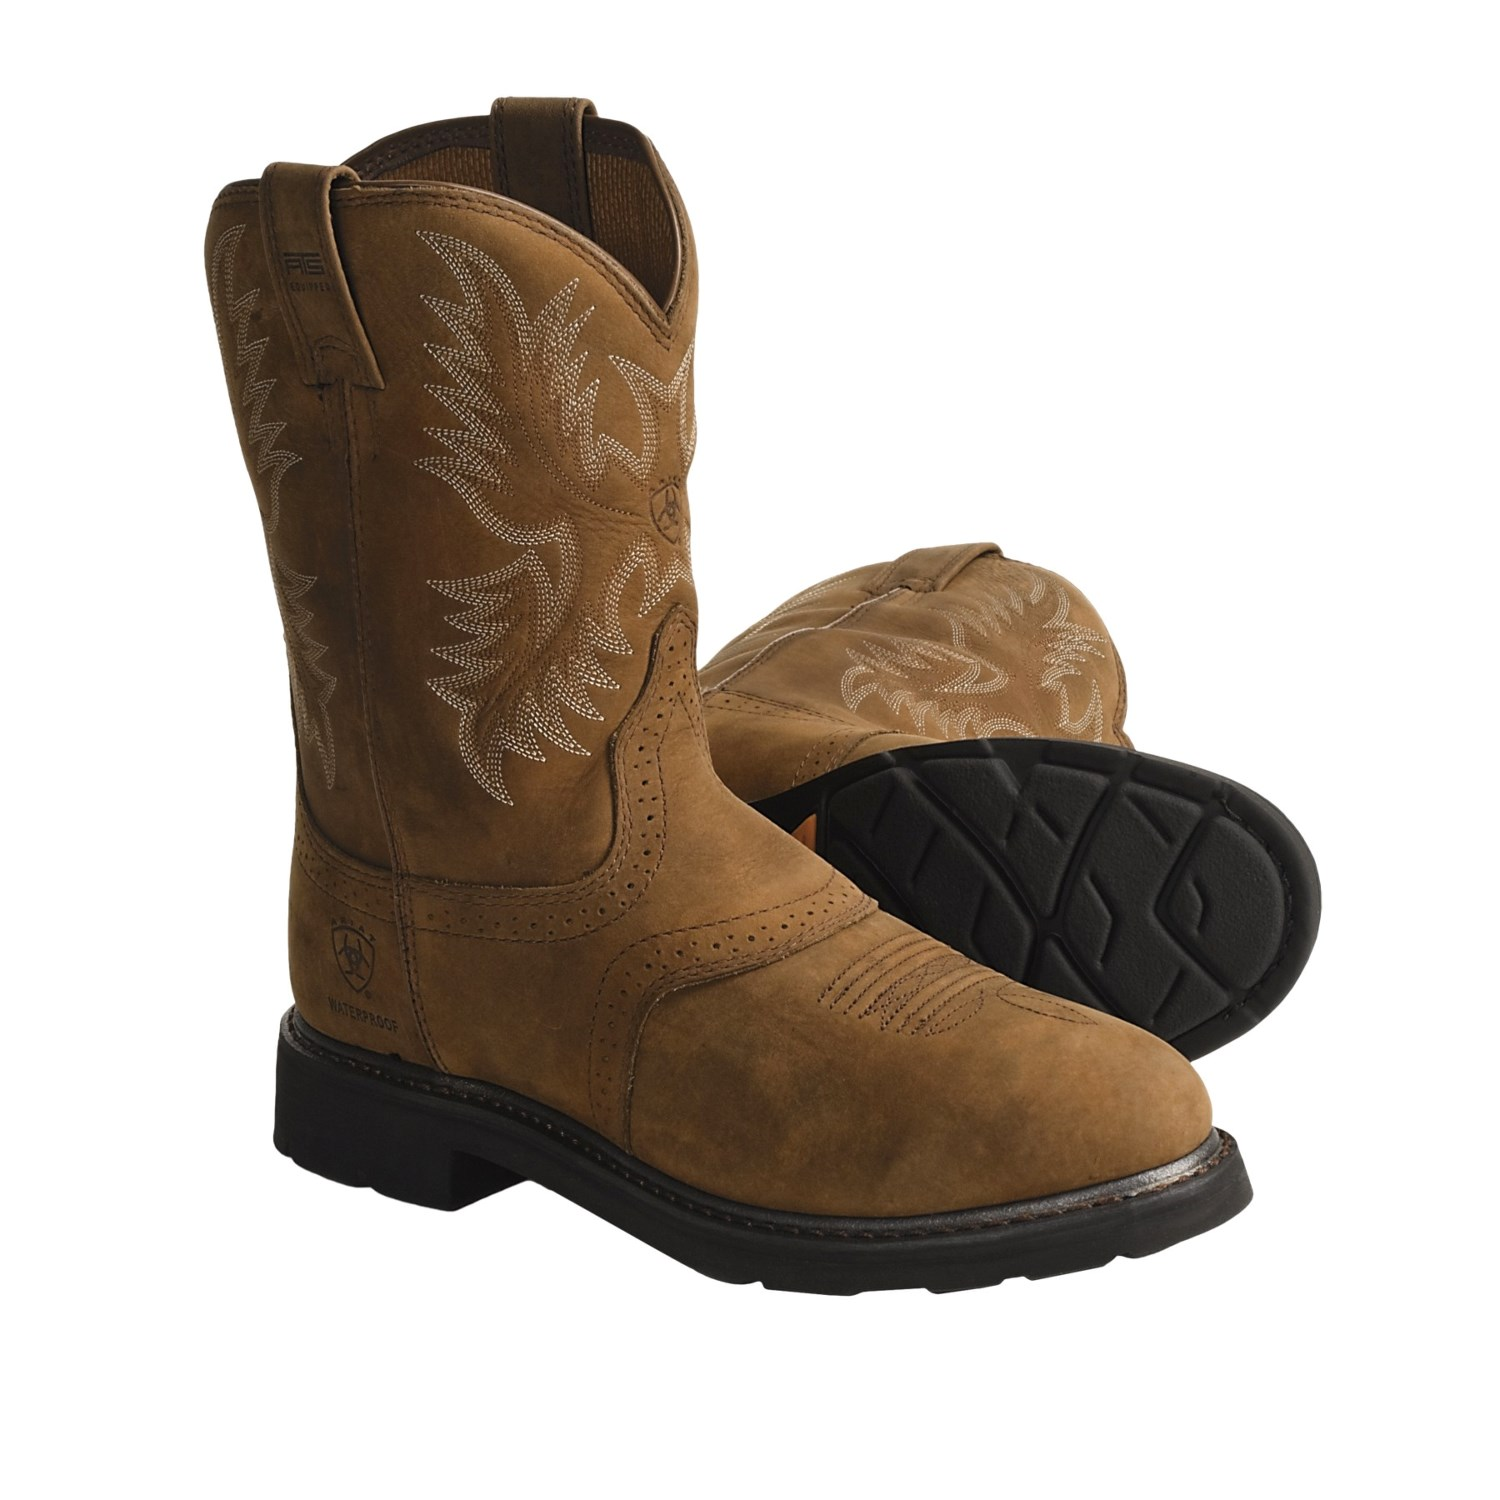 Nice Work Boots - Cr Boot